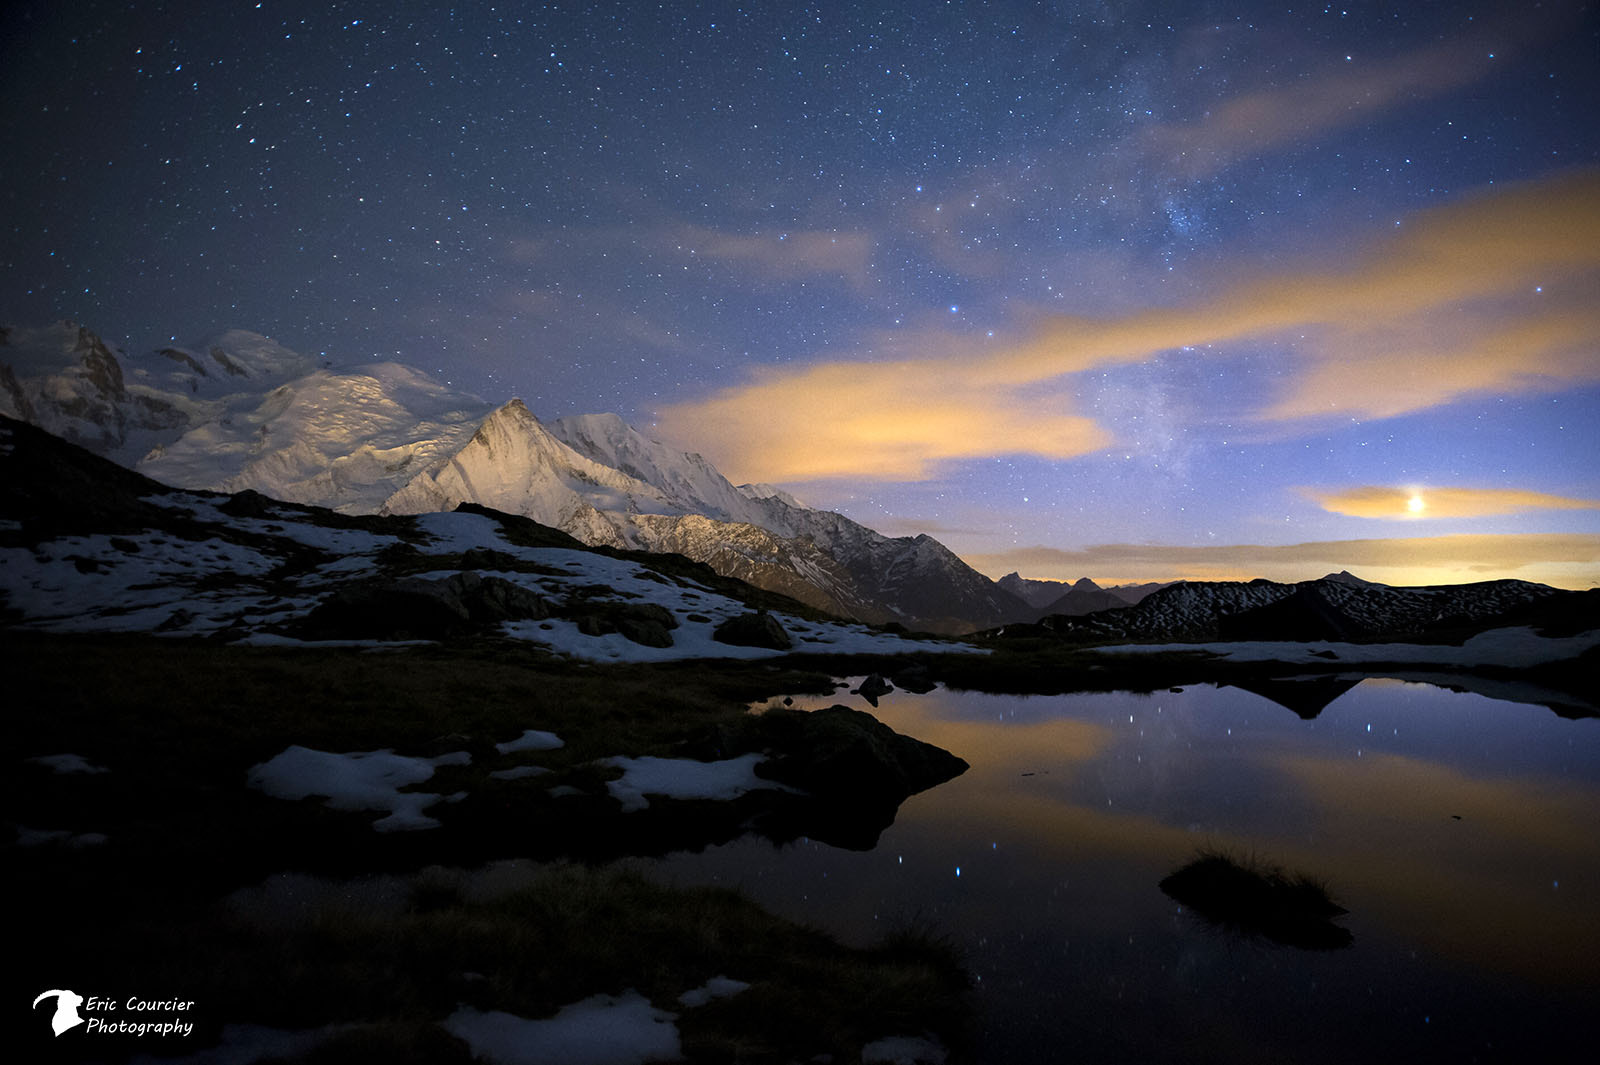 Photograph Vénus, Milkyway and Mont Blanc by Ricou05 on 500px